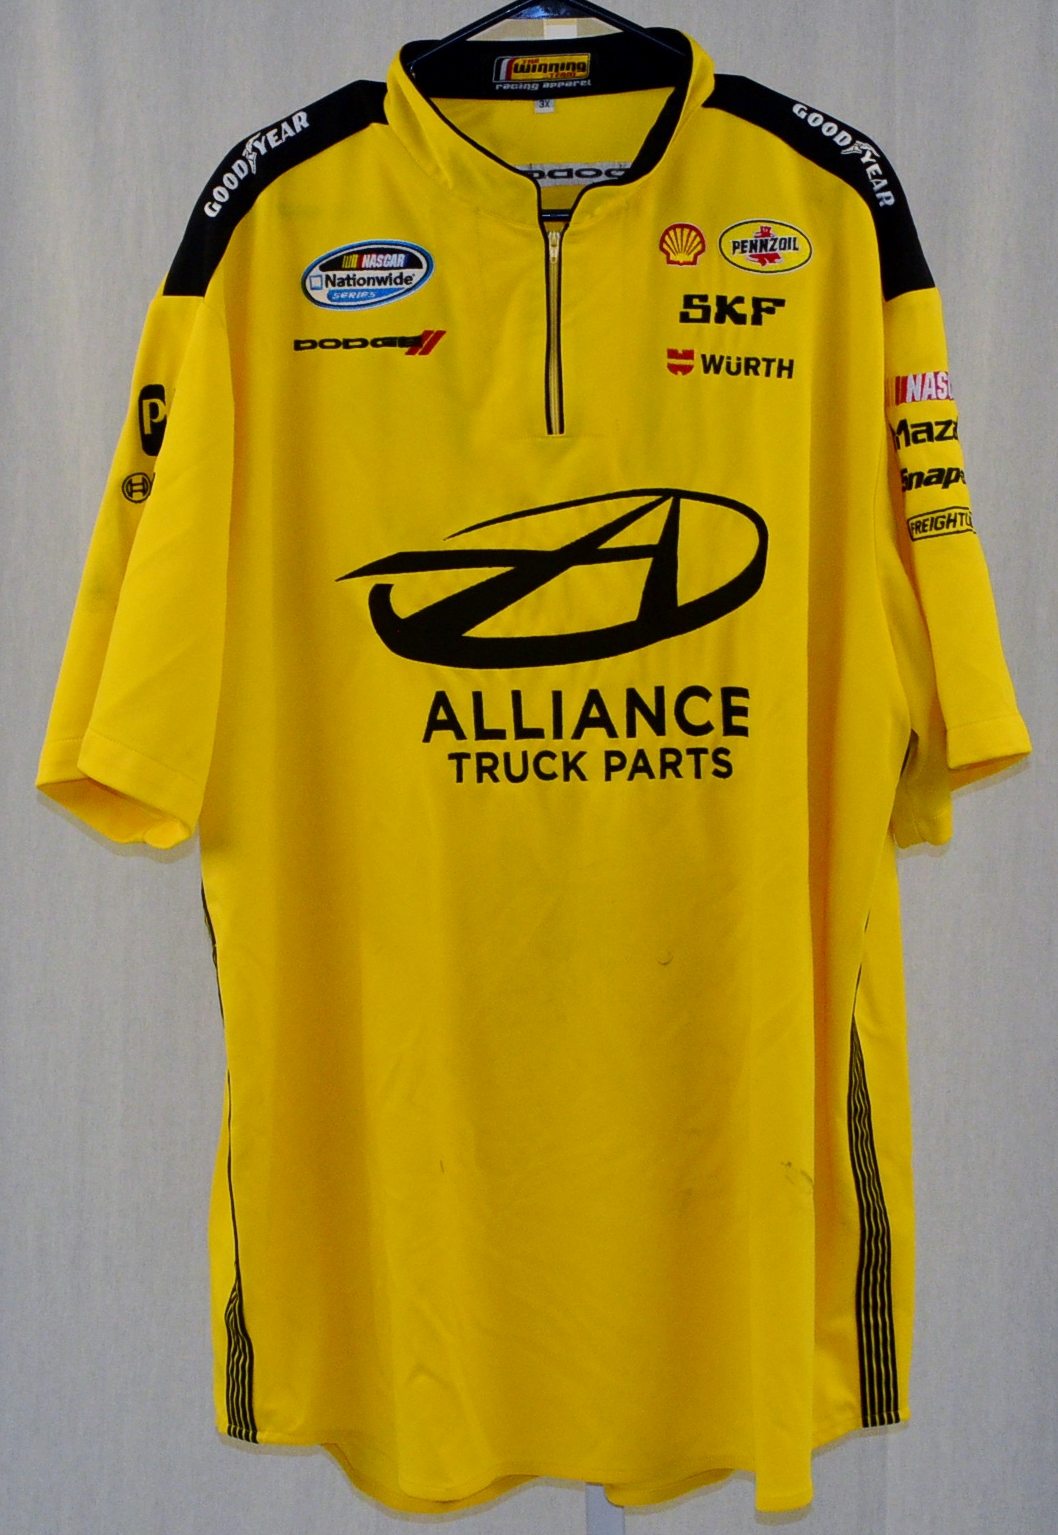 dff2d228 Home > Pit Crew Shirts > Sam Hornish Alliance Penske Race Used NASCAR Pit  Crew Shirt-3XL